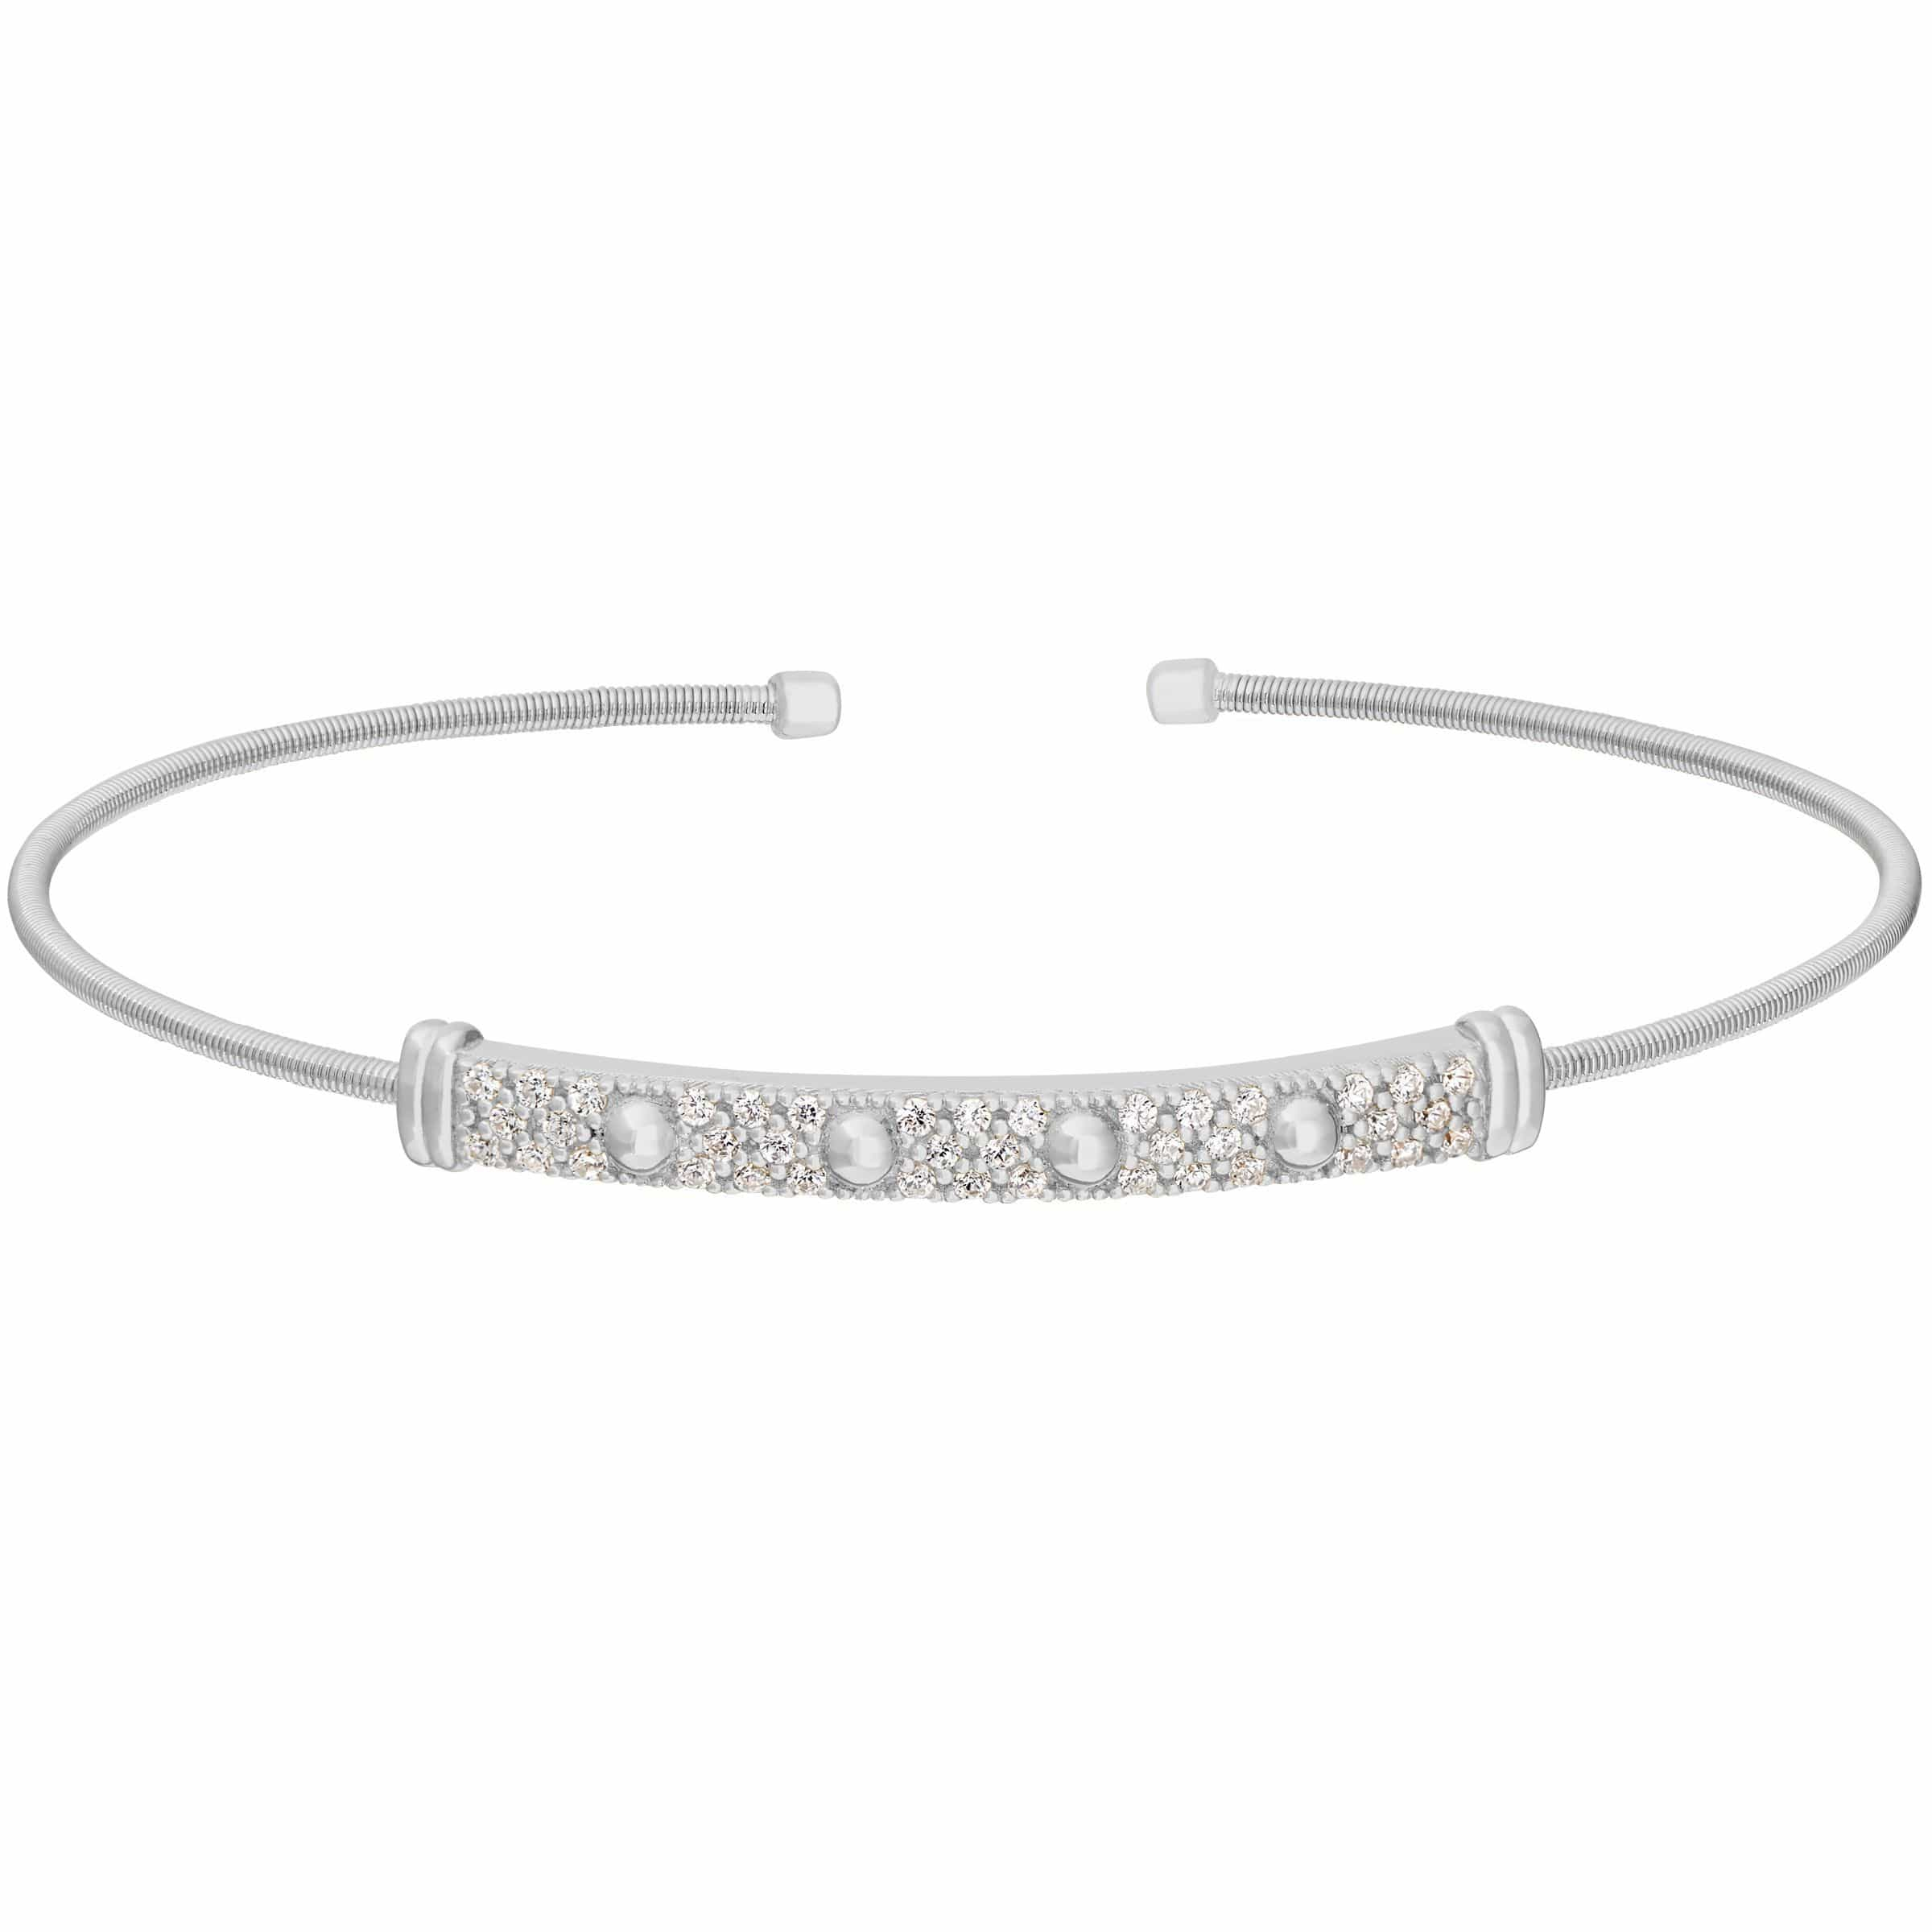 Rhodium Finish Sterling Silver Cable Cuff Bracelet - LL7025B-RH-Kelly Waters-Renee Taylor Gallery